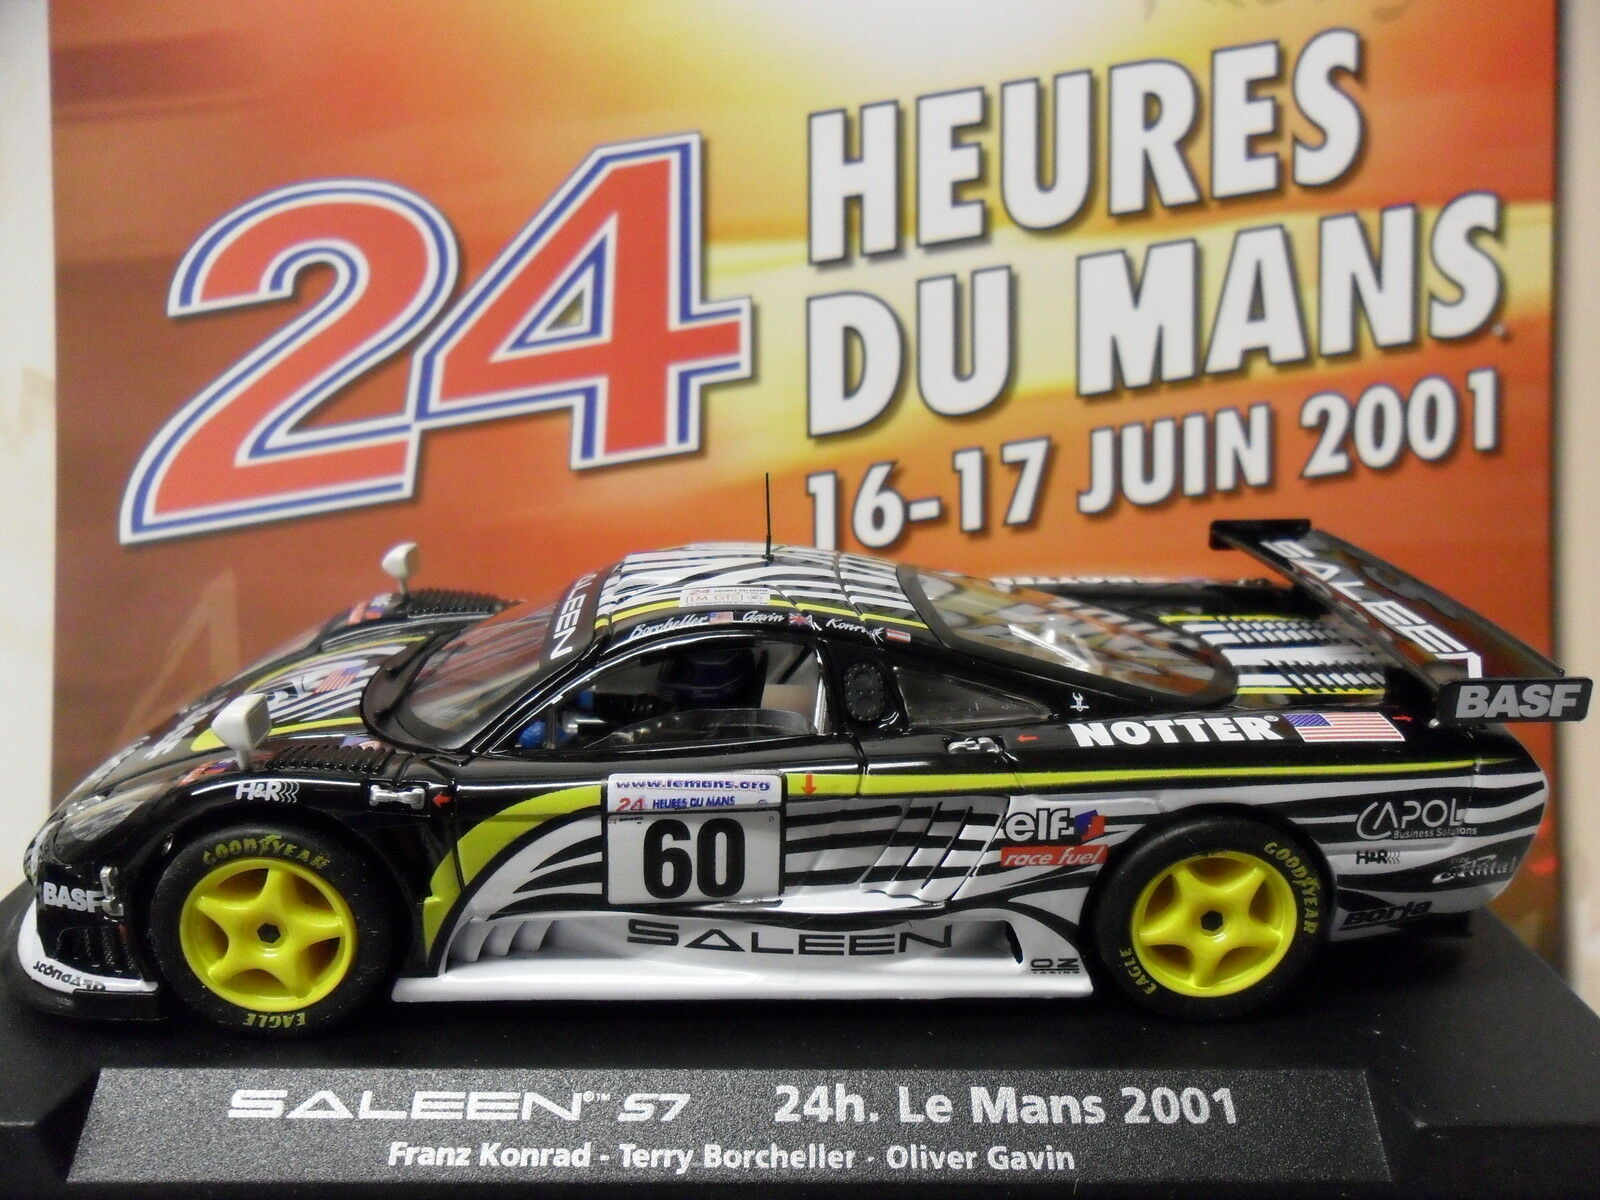 FLY A262   88044 SALEEN S7R LE MANS 2001 1 32 SLOT CAR FOR SCALEXTRIC